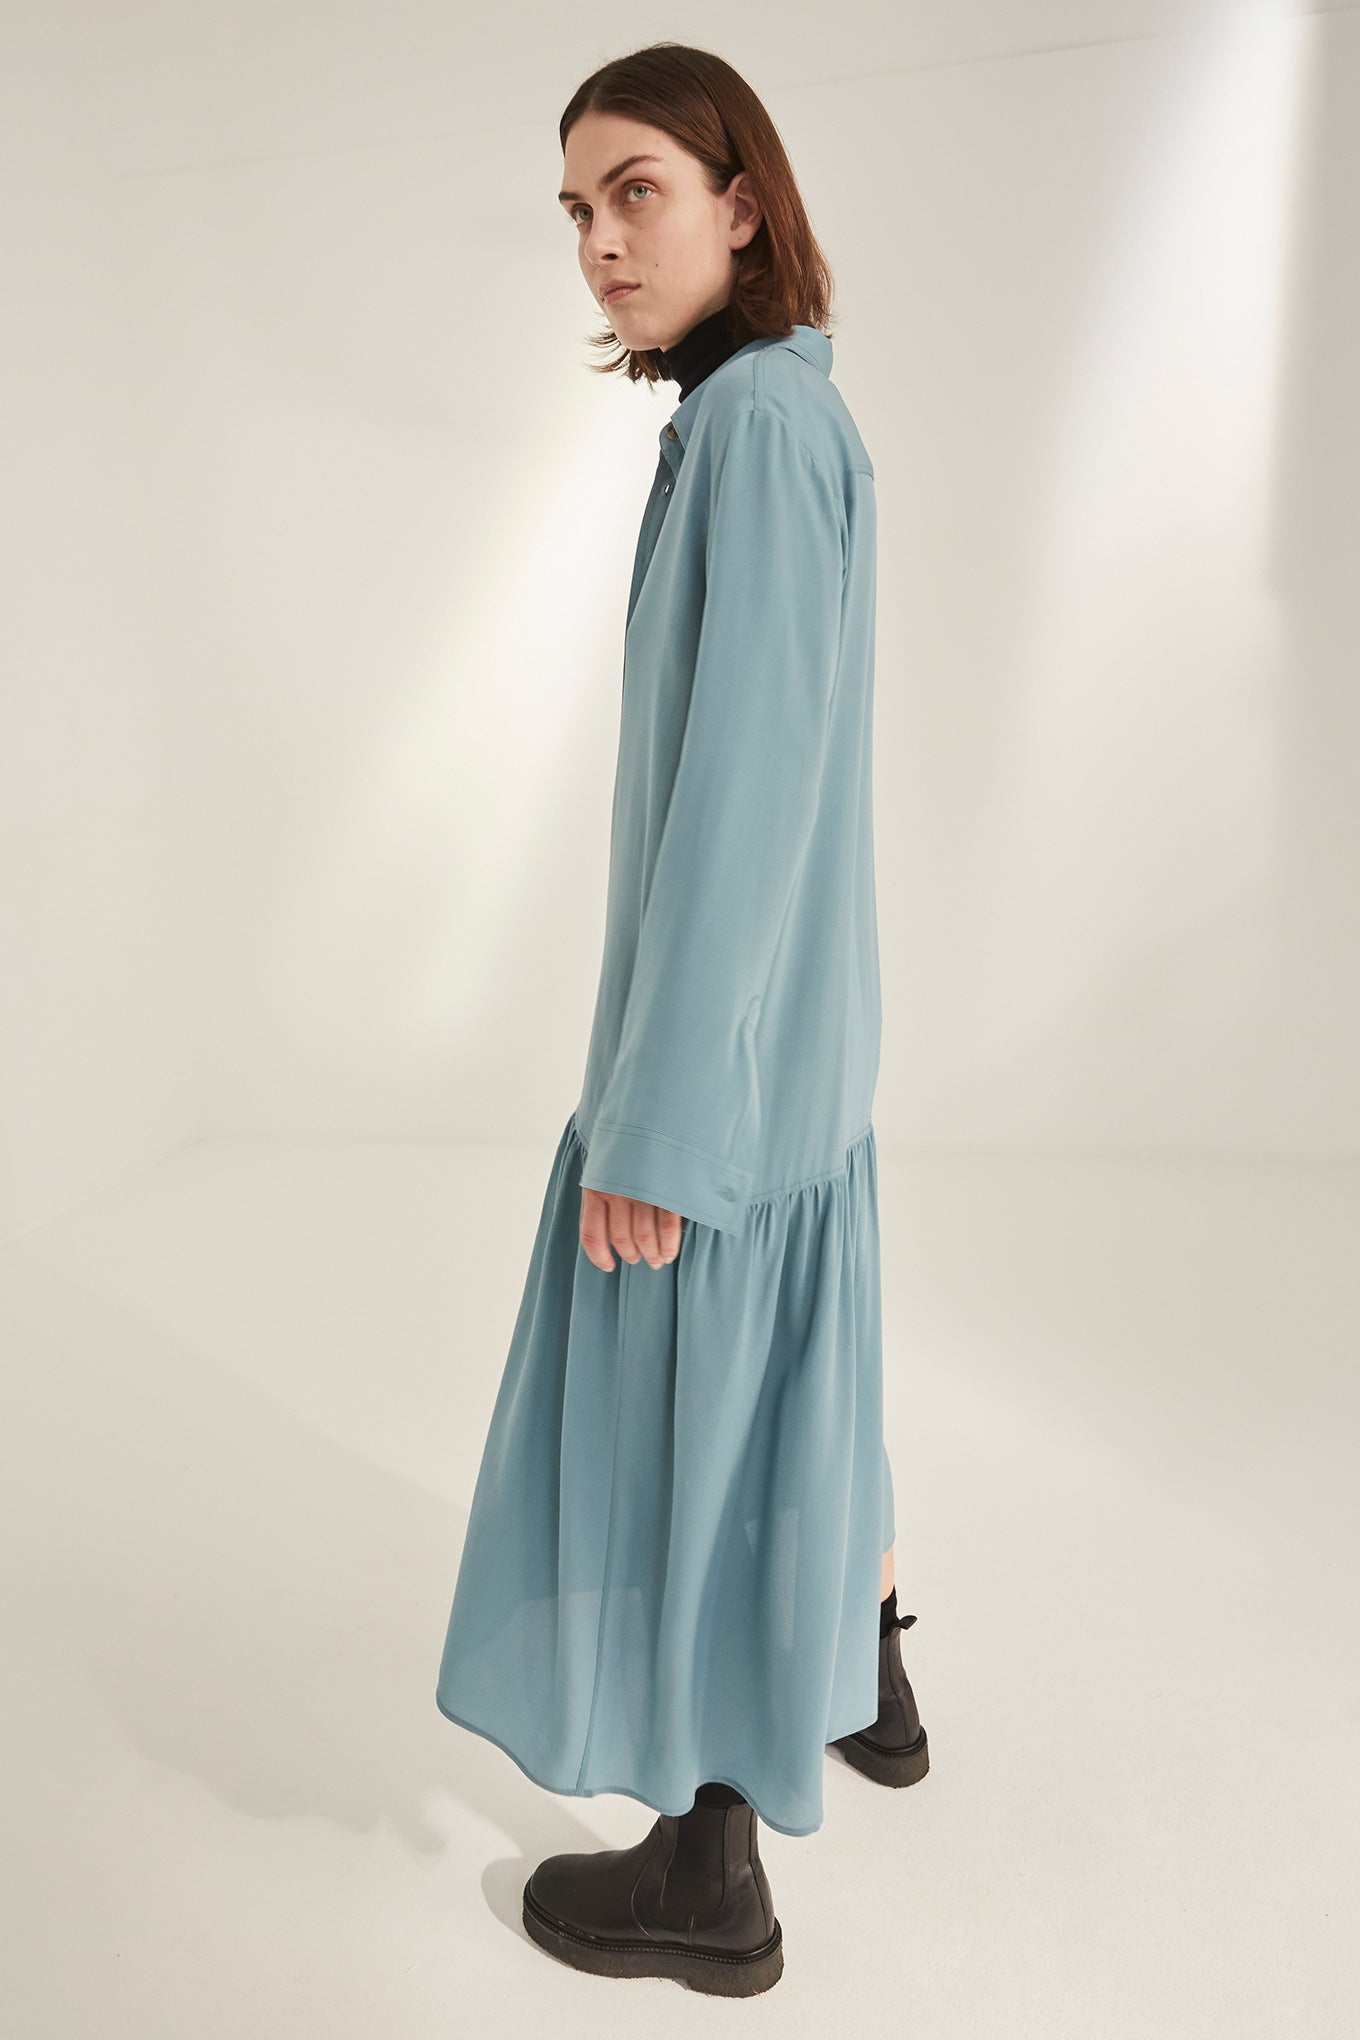 Eika Dress - Smoke Blue